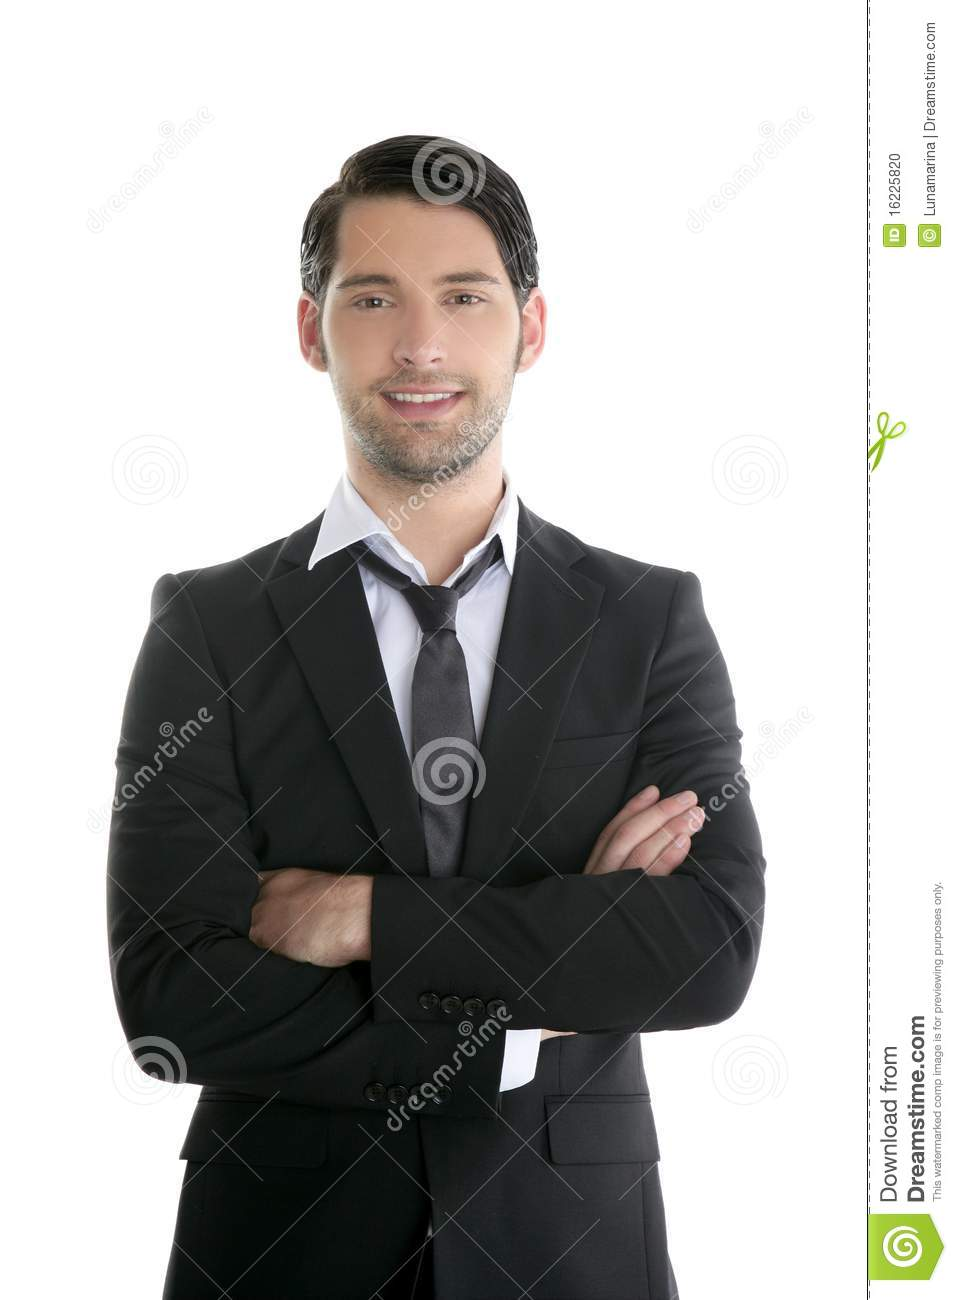 Fashion Trendy Elegant Young Black Suit Man Stock Photo - Image ...